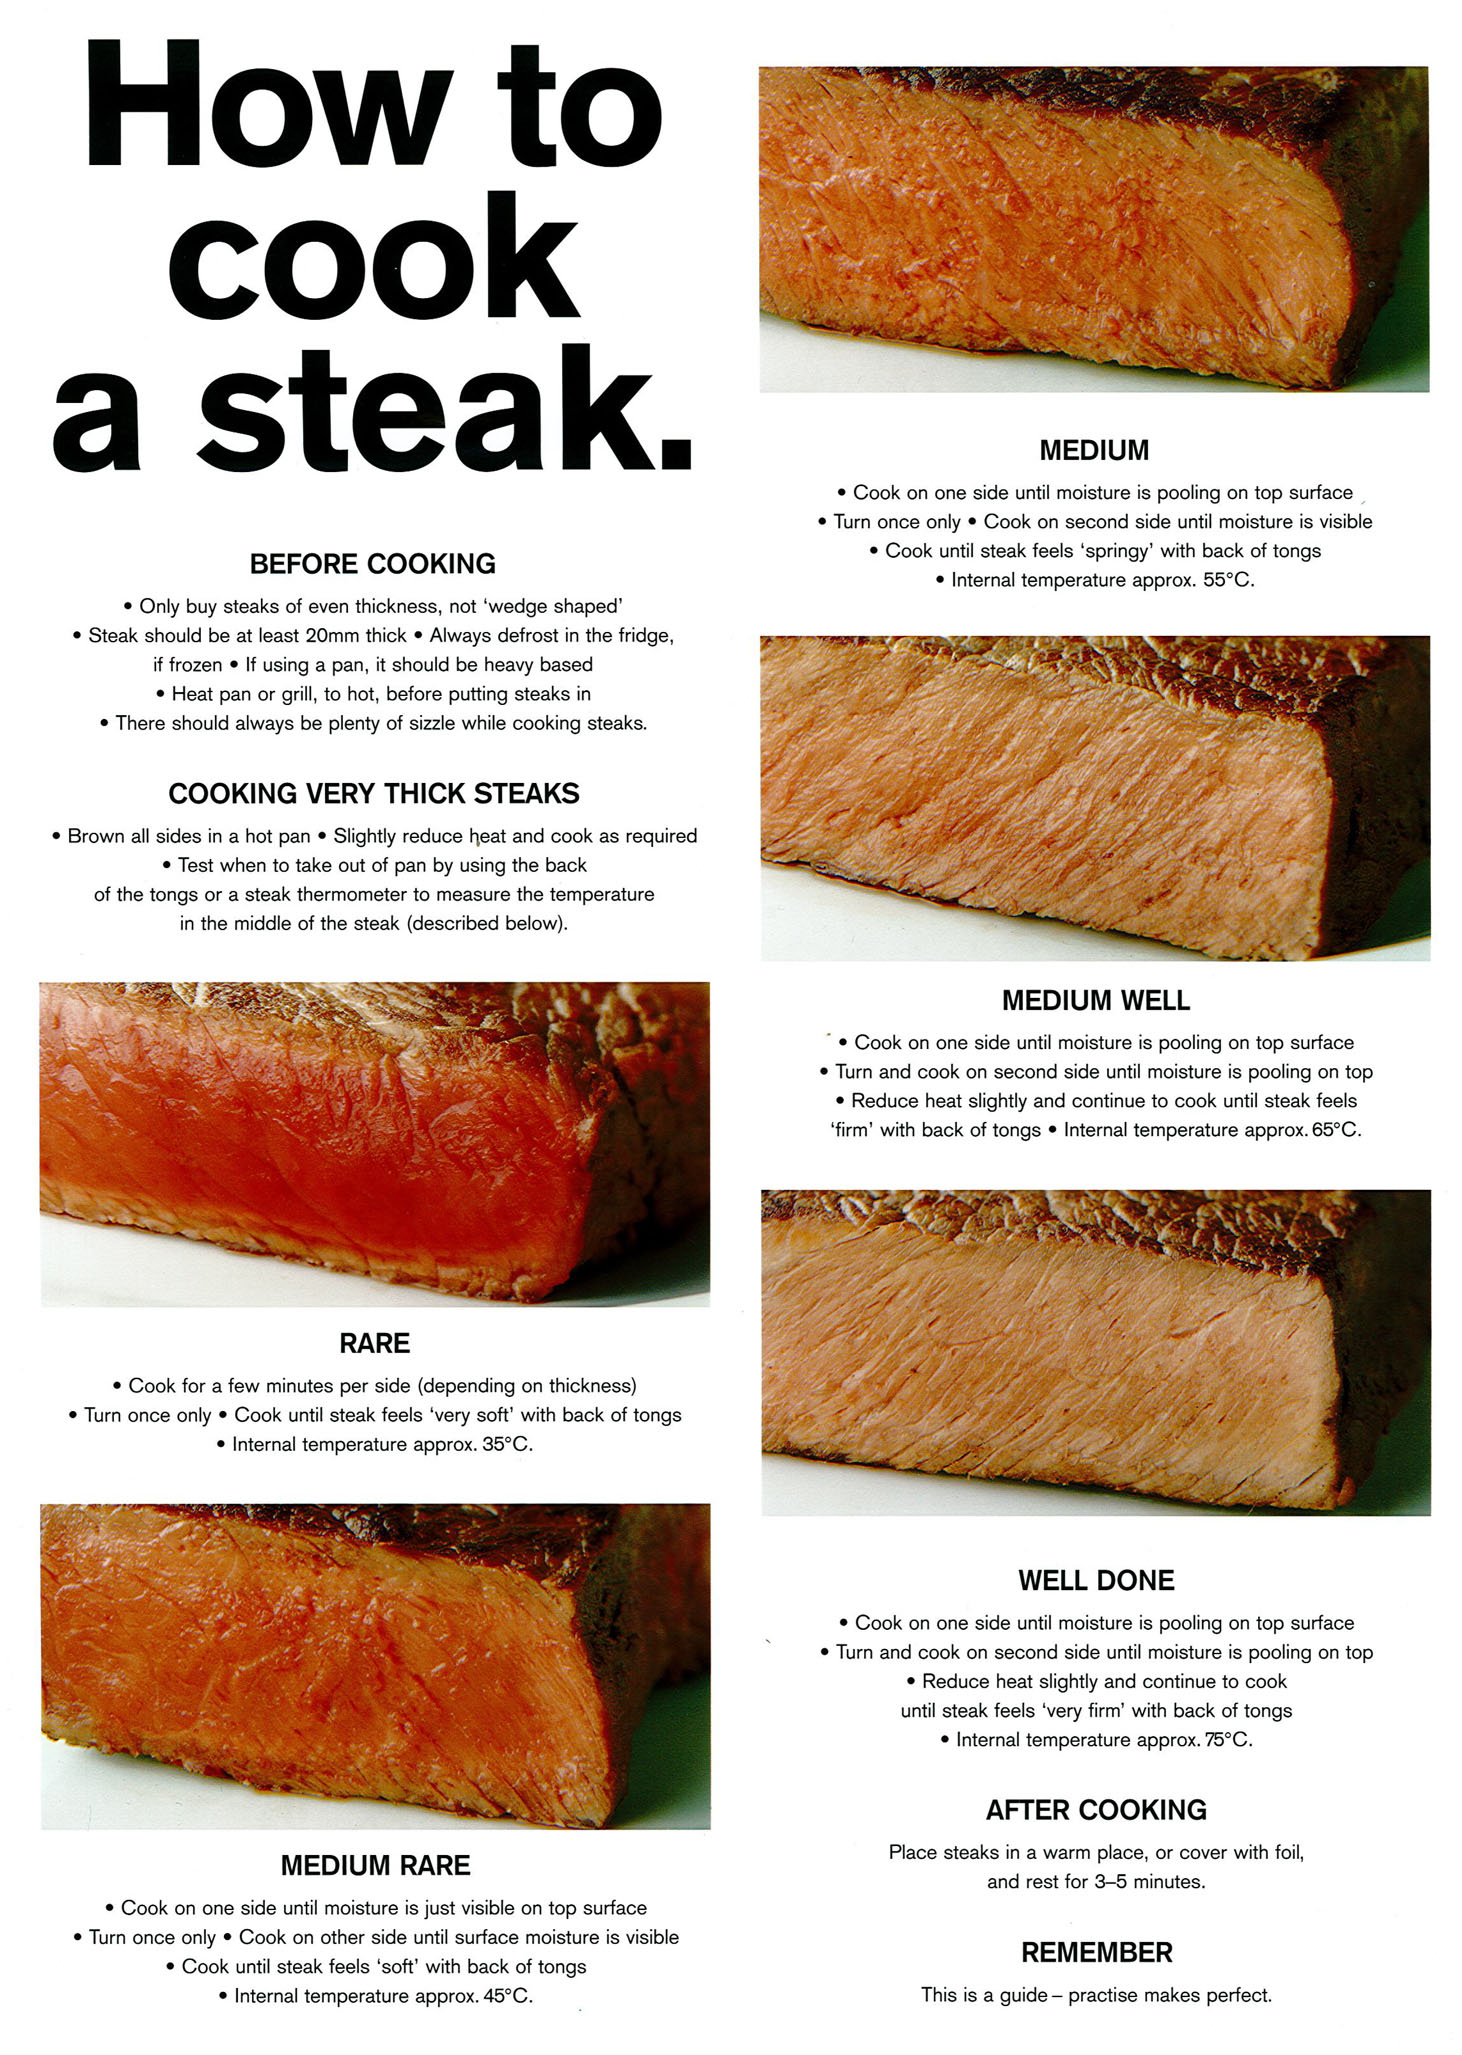 Cooking a steak - best methods